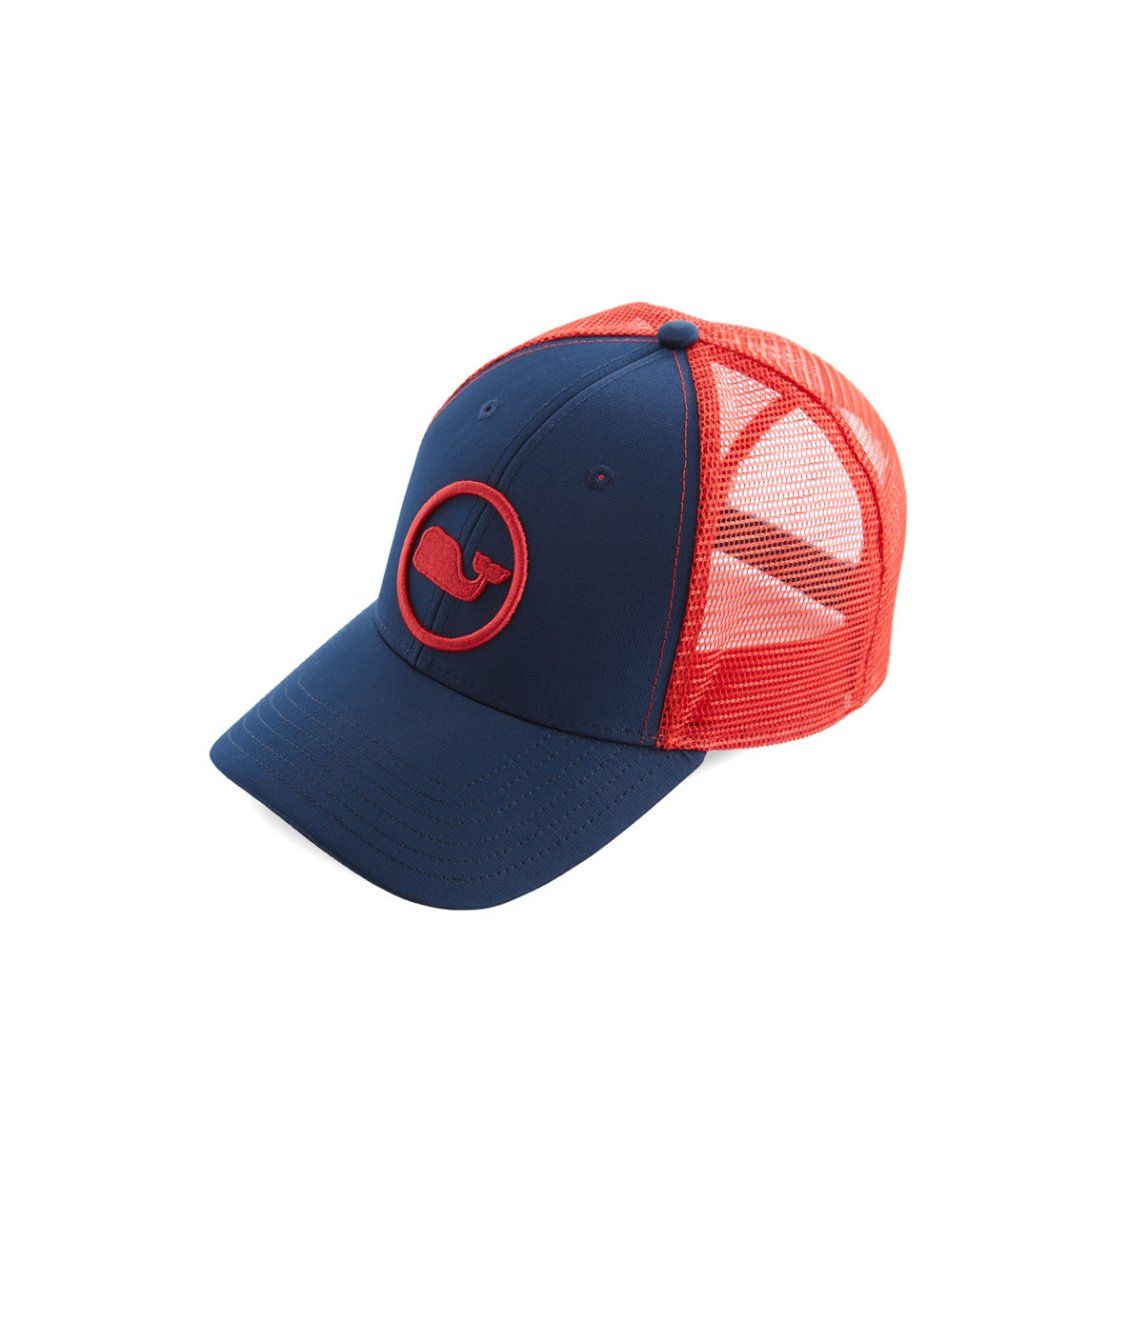 Whale Dot Performance Trucker Hat  76be828ca58